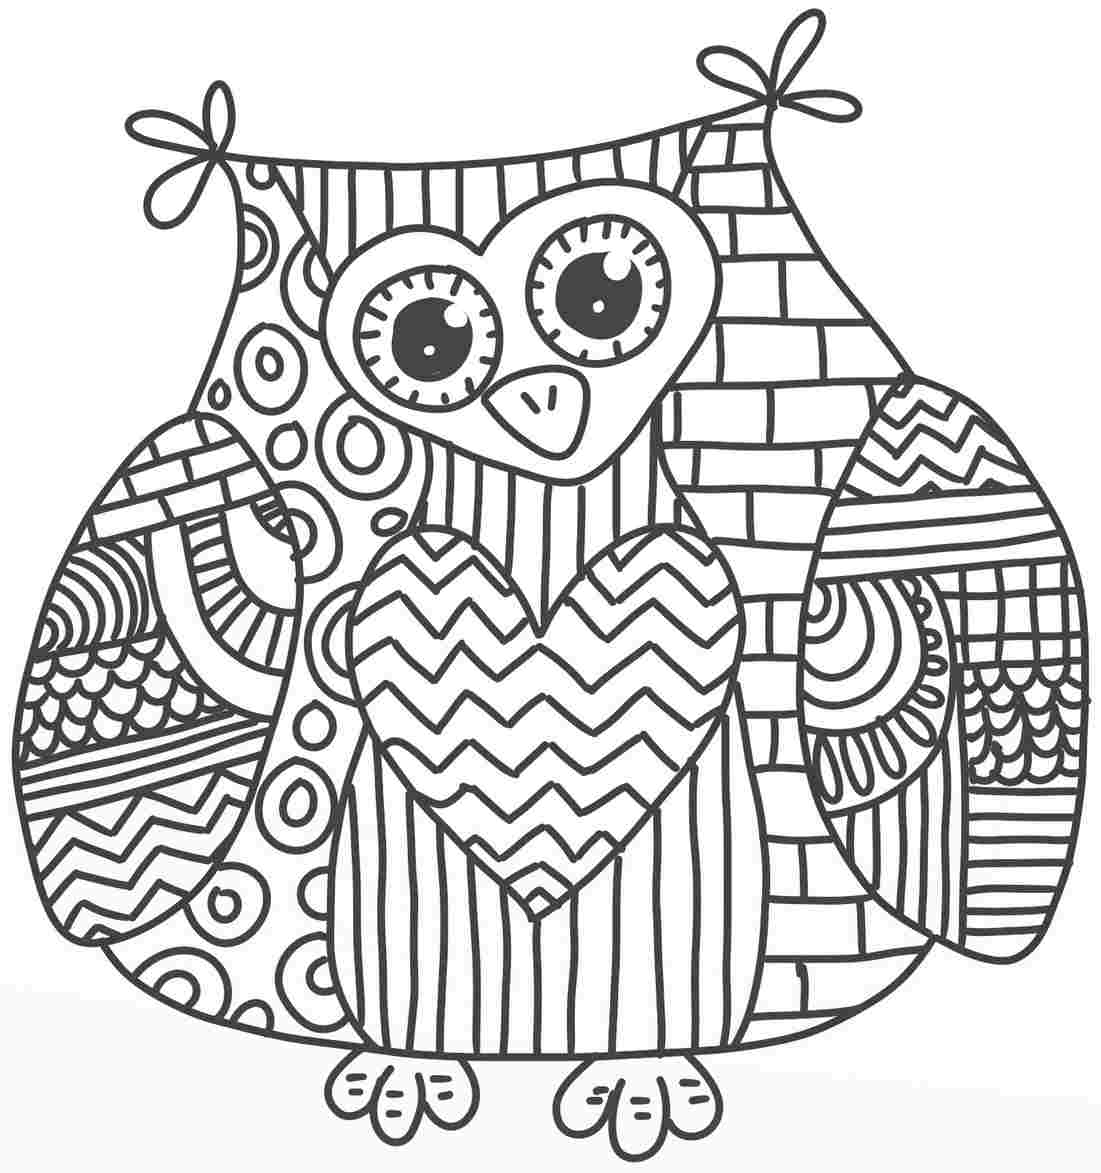 Owl Coloring Pages Pdf : Cute owl coloring pages home